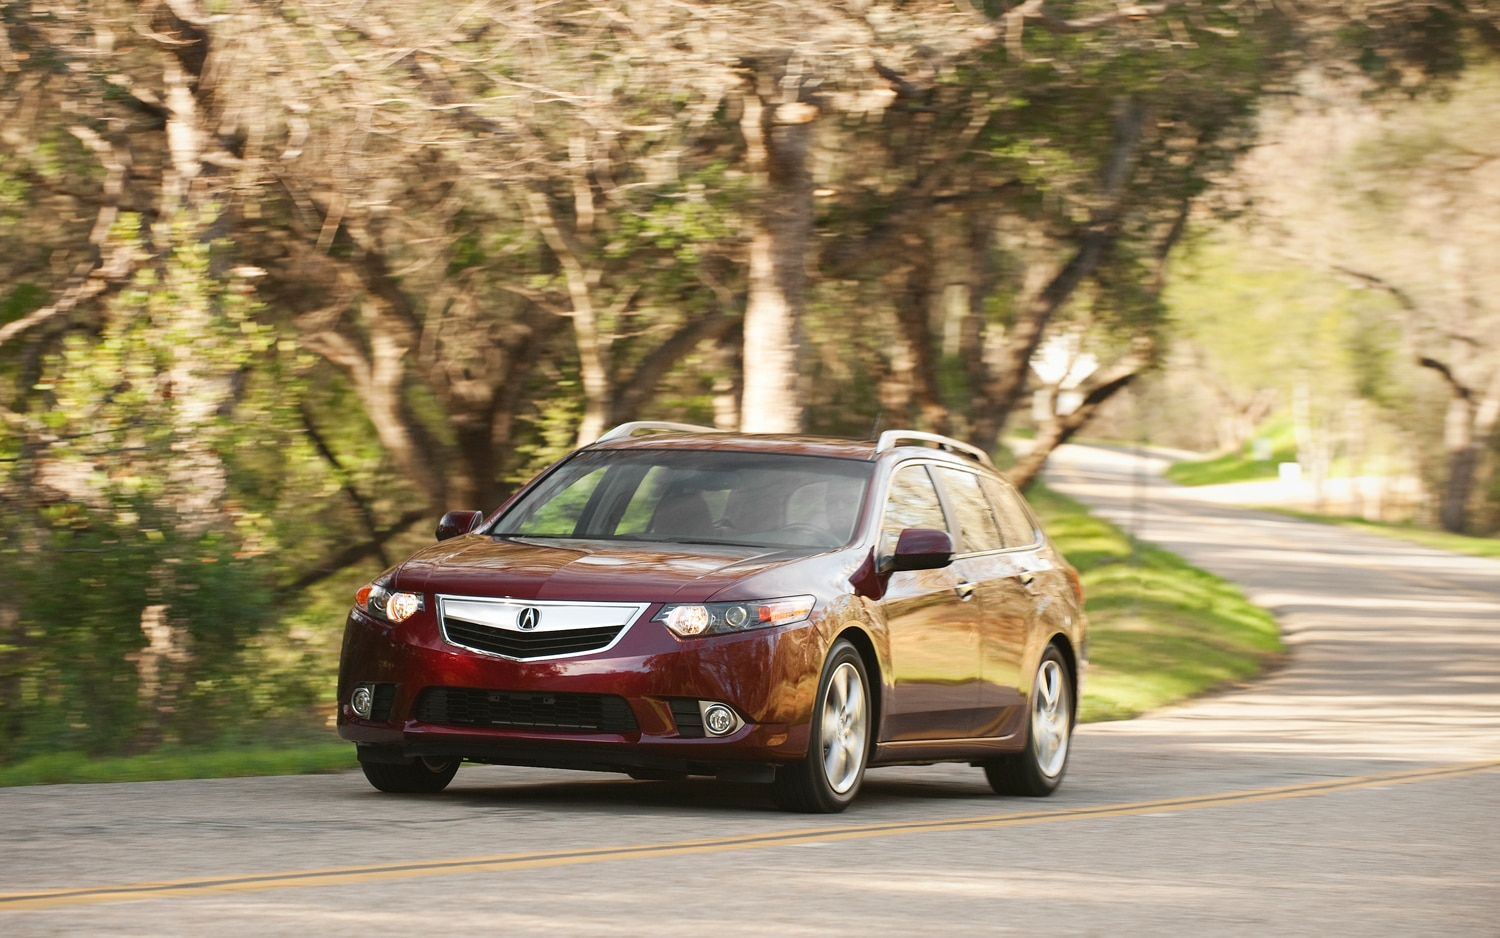 2011 Acura Tsx Wagon Long Term Update 2 Motor Trend